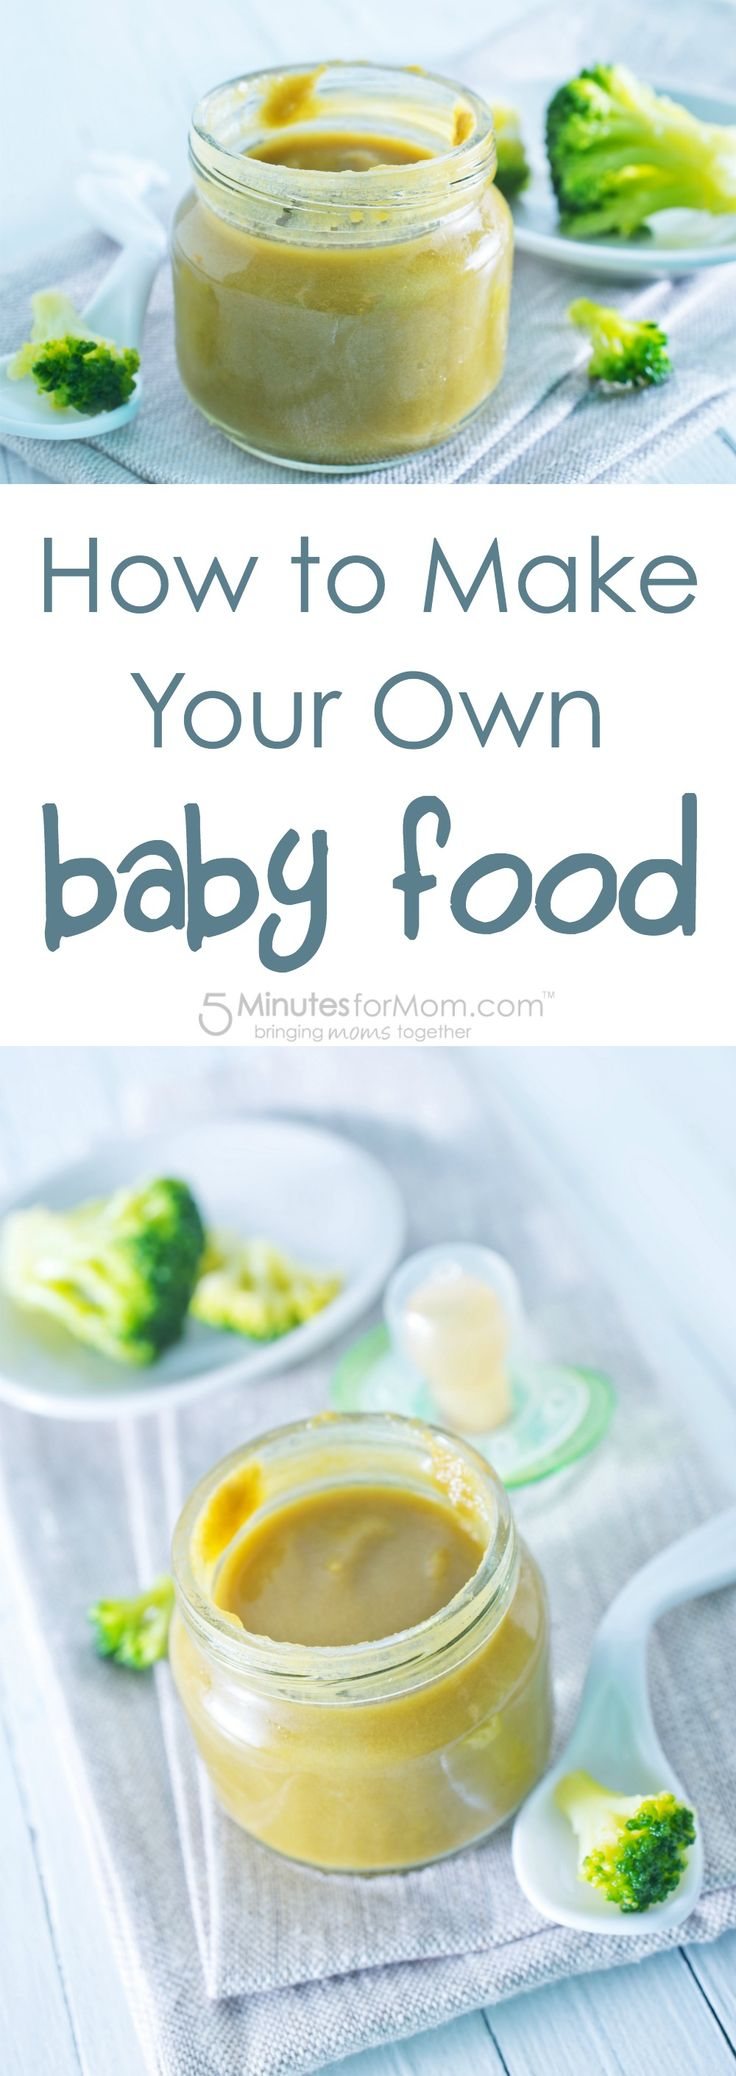 261 best Free Baby Formula and Food images on Pinterest ...